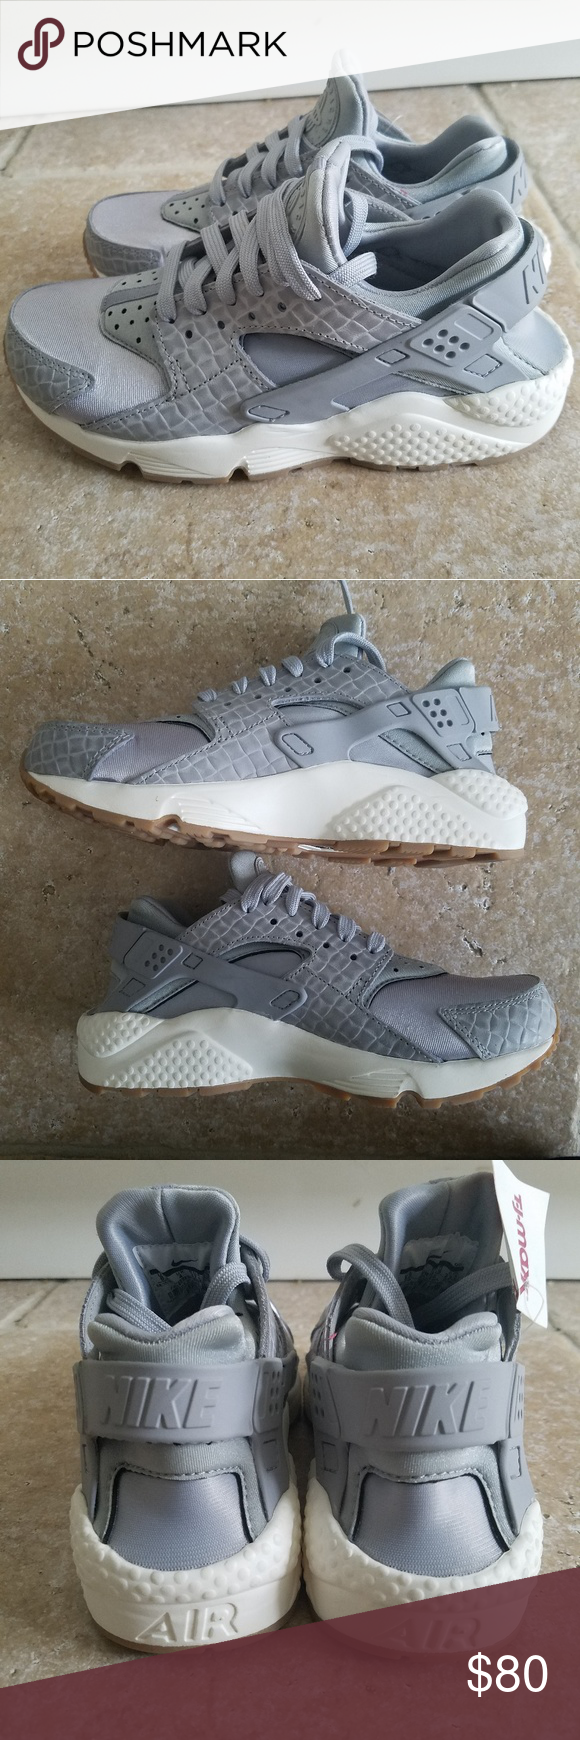 sale retailer c7ae0 14fab NIKE AIR HUARACHE Run PRM Sneakers Wolf Grey Sail New without tags from  smoke free home